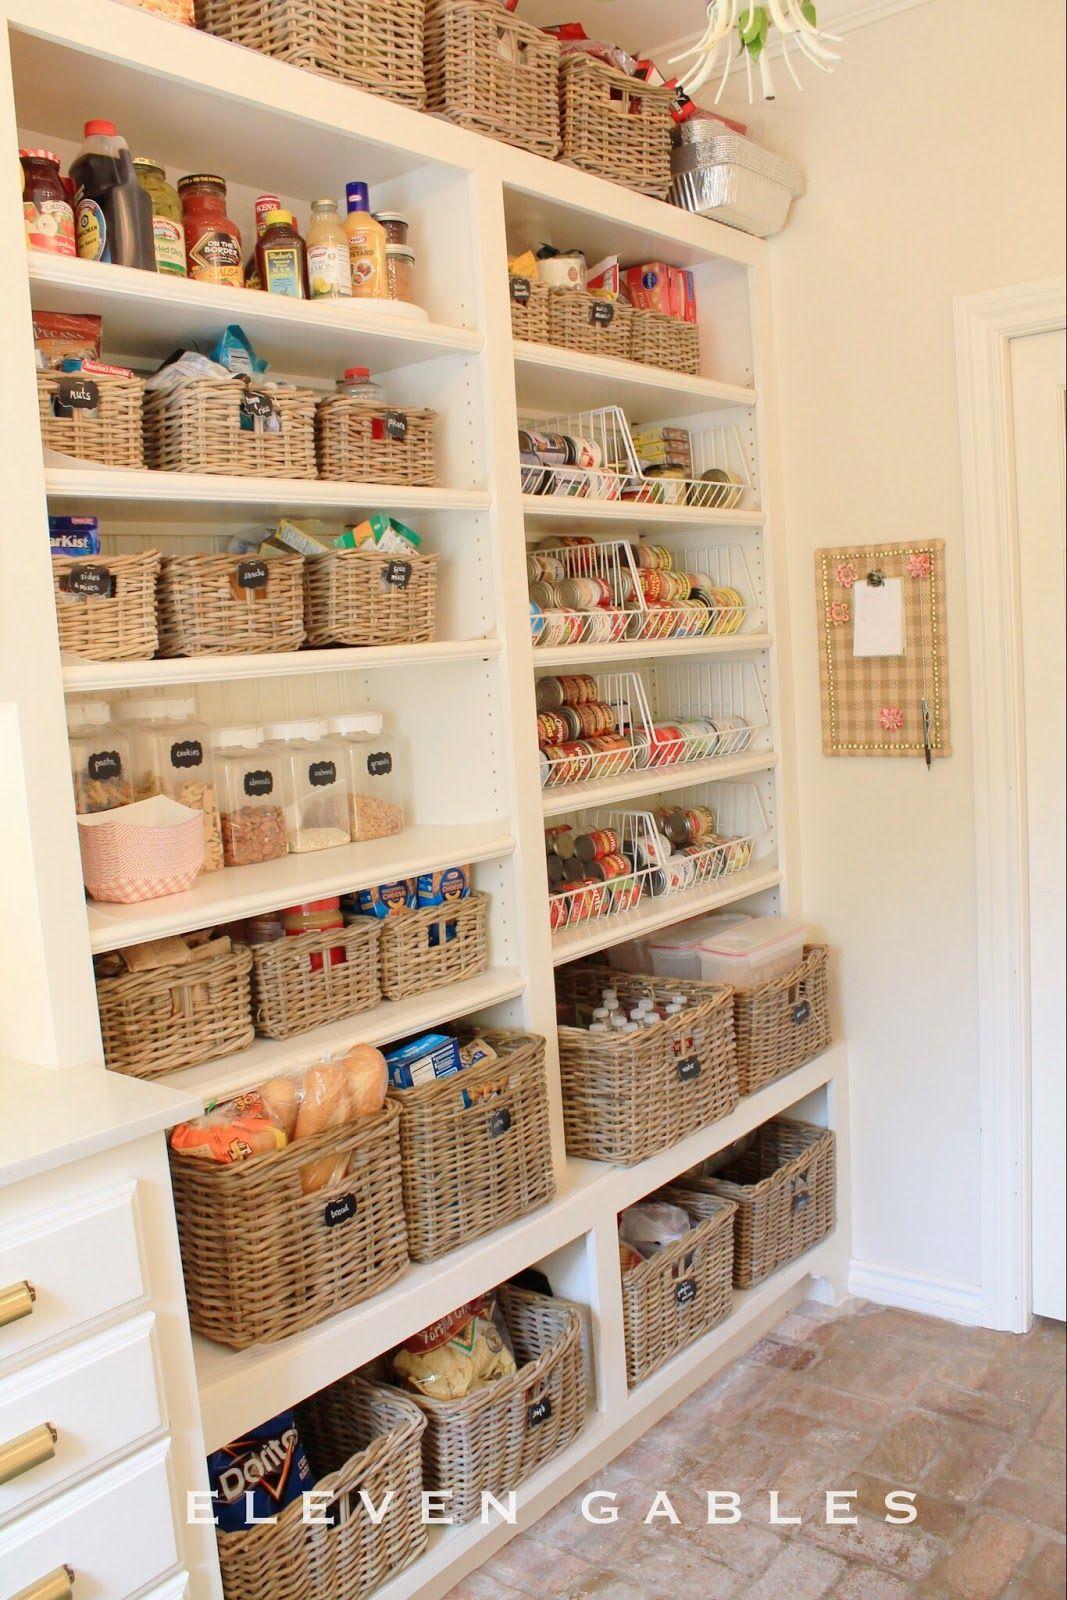 kitchen trends pantry drawer products attachment counter junk pant the organization productsrhaihomedycom hgtvrhhgtvcom organizing storage